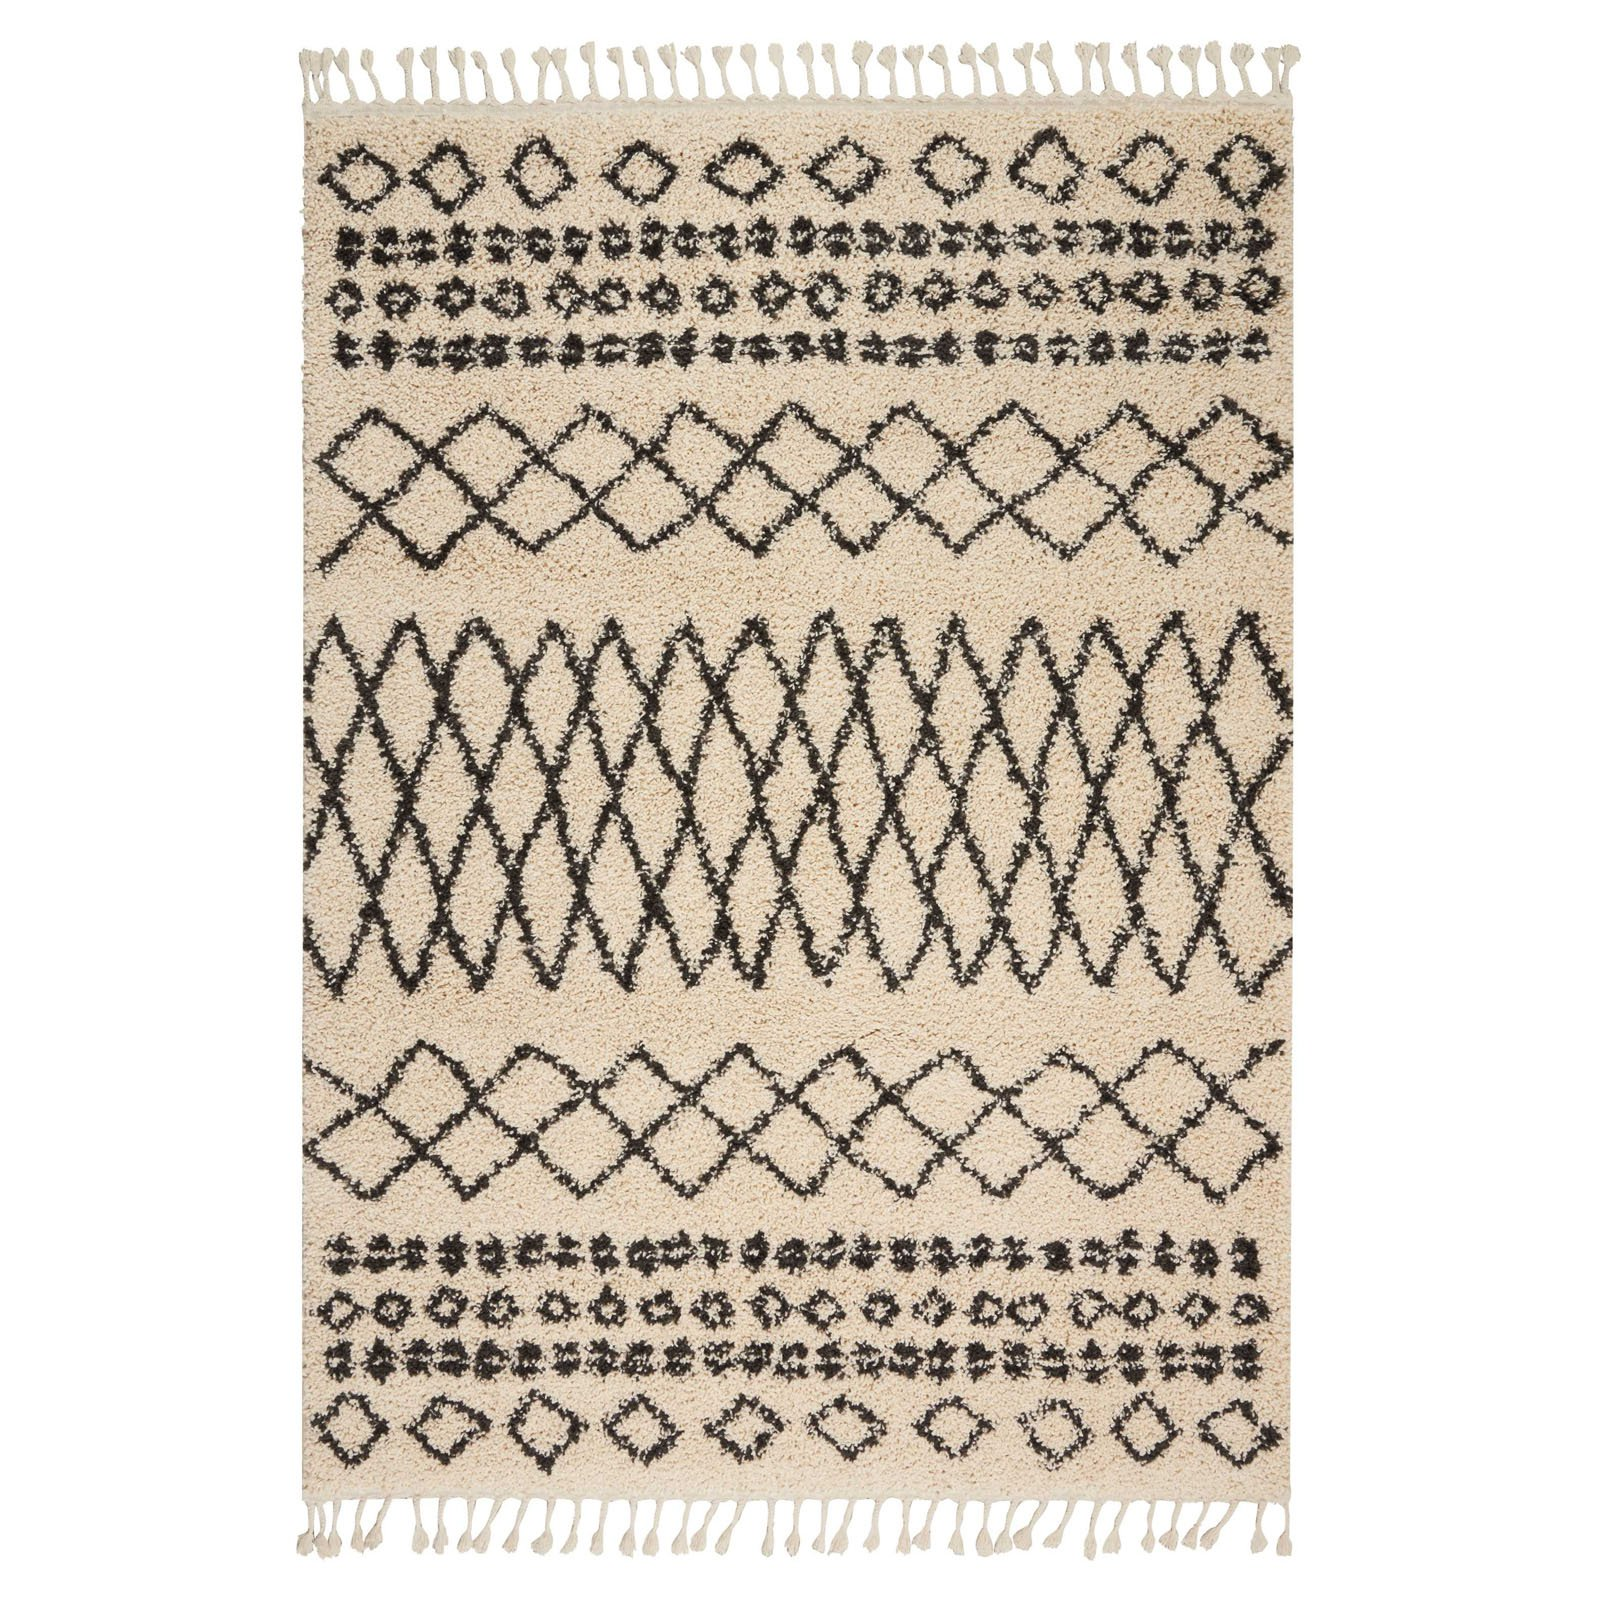 Nourison Moroccan Marrakesh Shag Cream Area Rug by Nourison